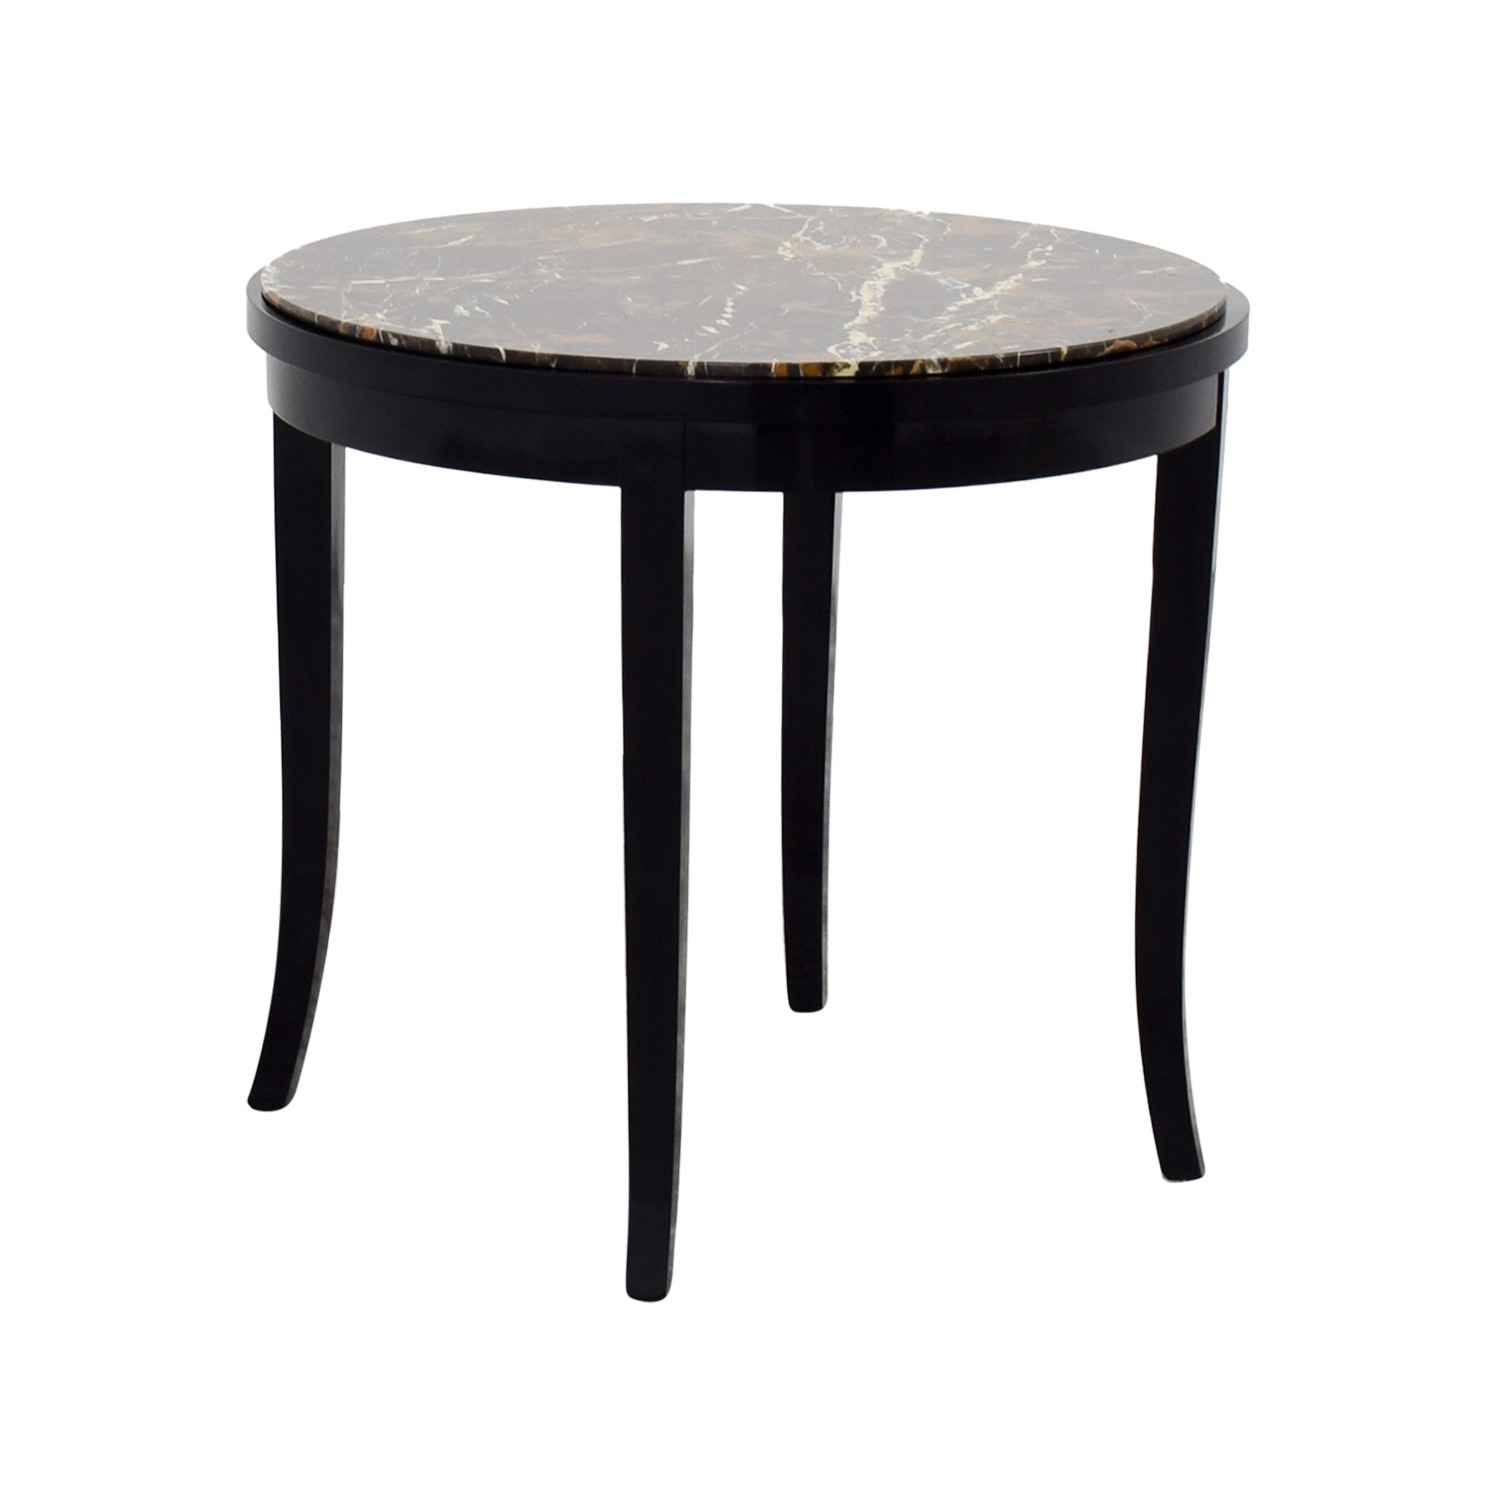 84 off marble top coffee table tables - Marble tops for furniture ...